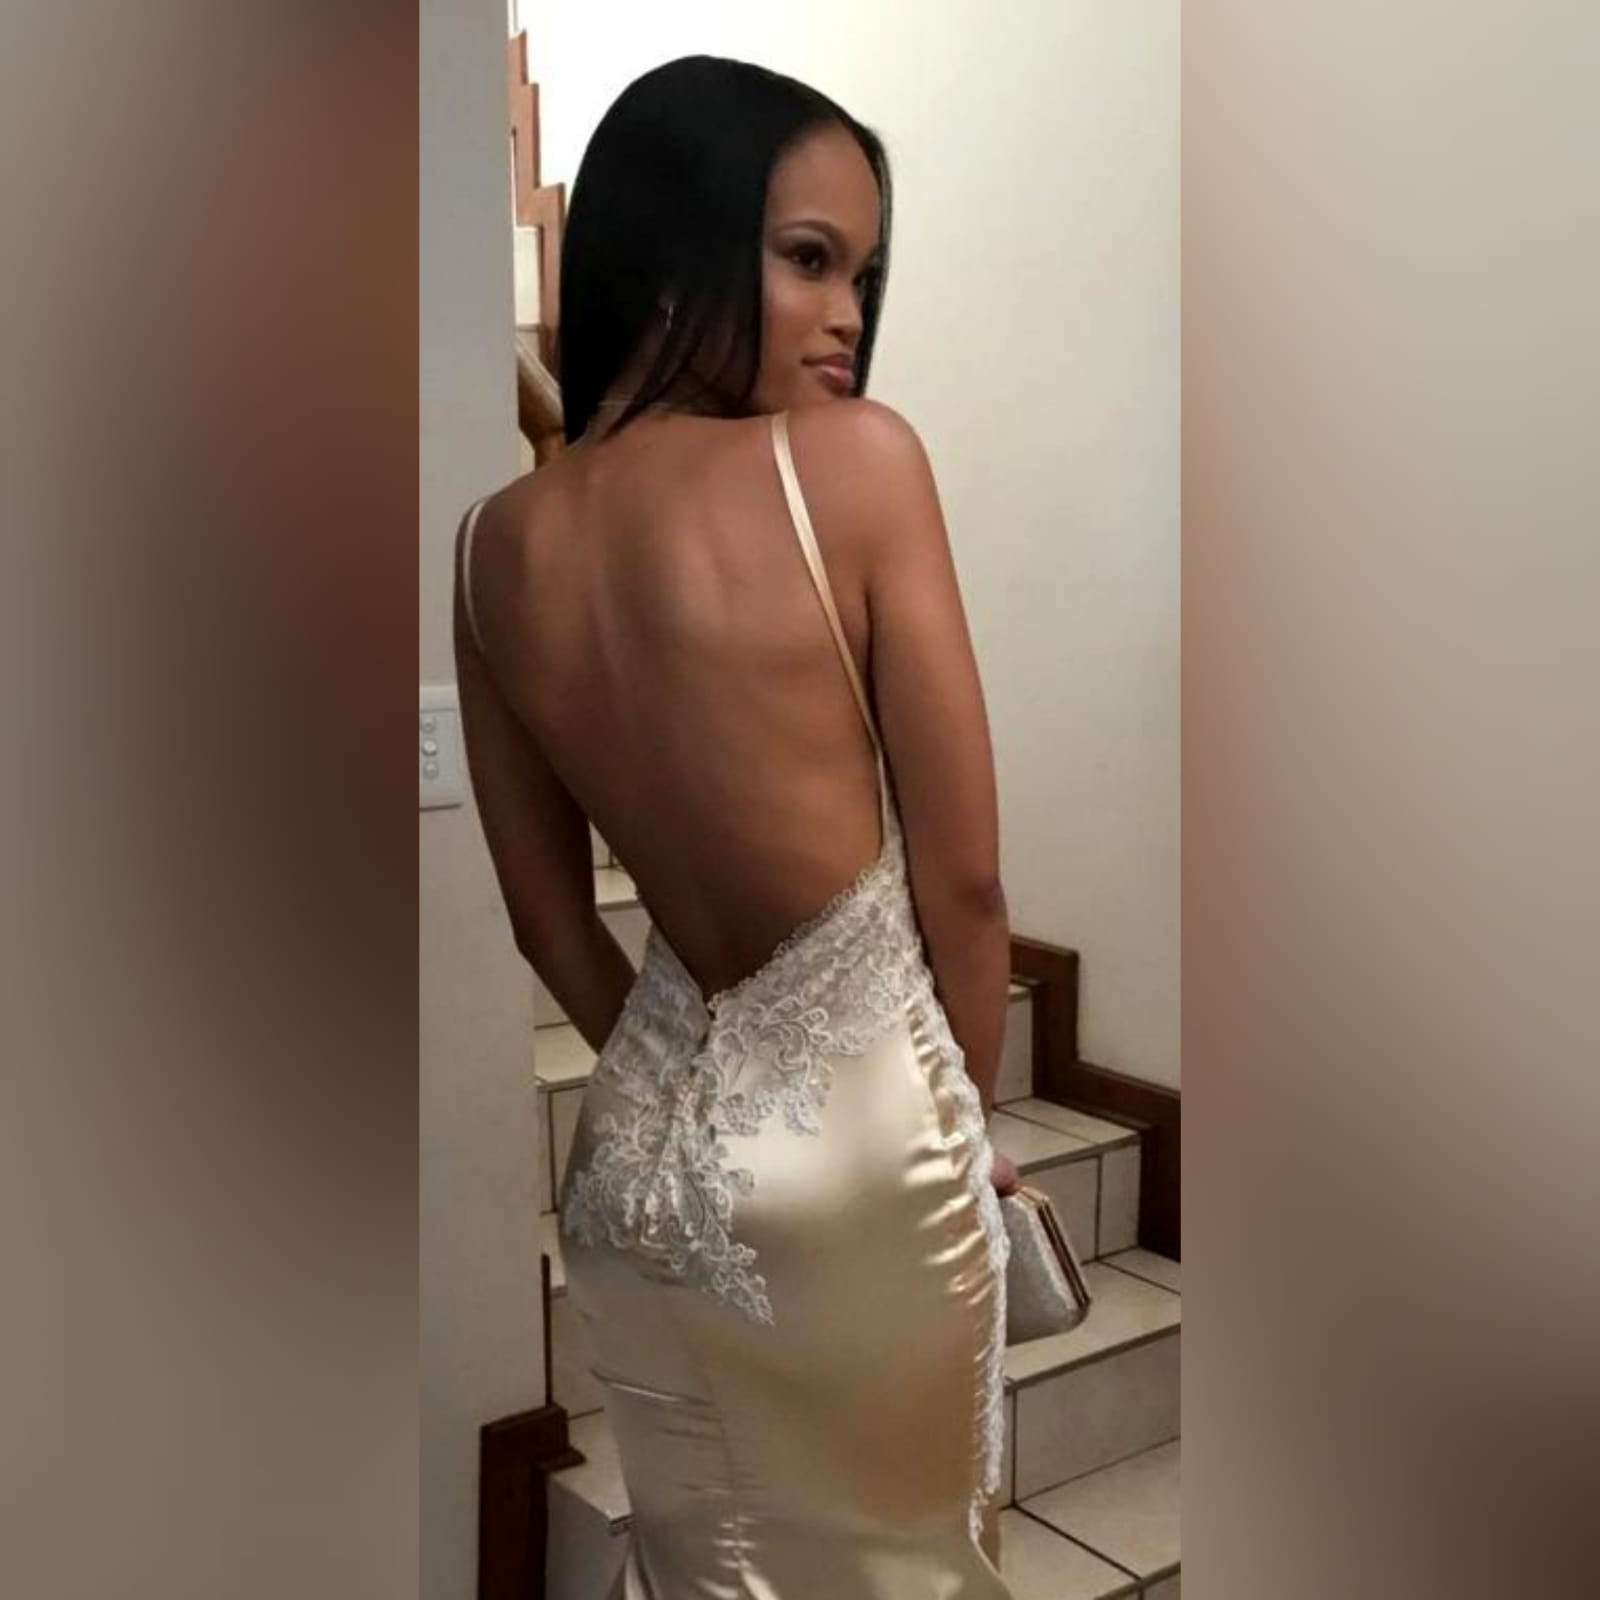 Gold satin soft mermaid matric farewell dress 3 gold satin soft mermaid matric farewell dress with a v neckline, a naked back and long train. Bodice hips and back detailed with lace.